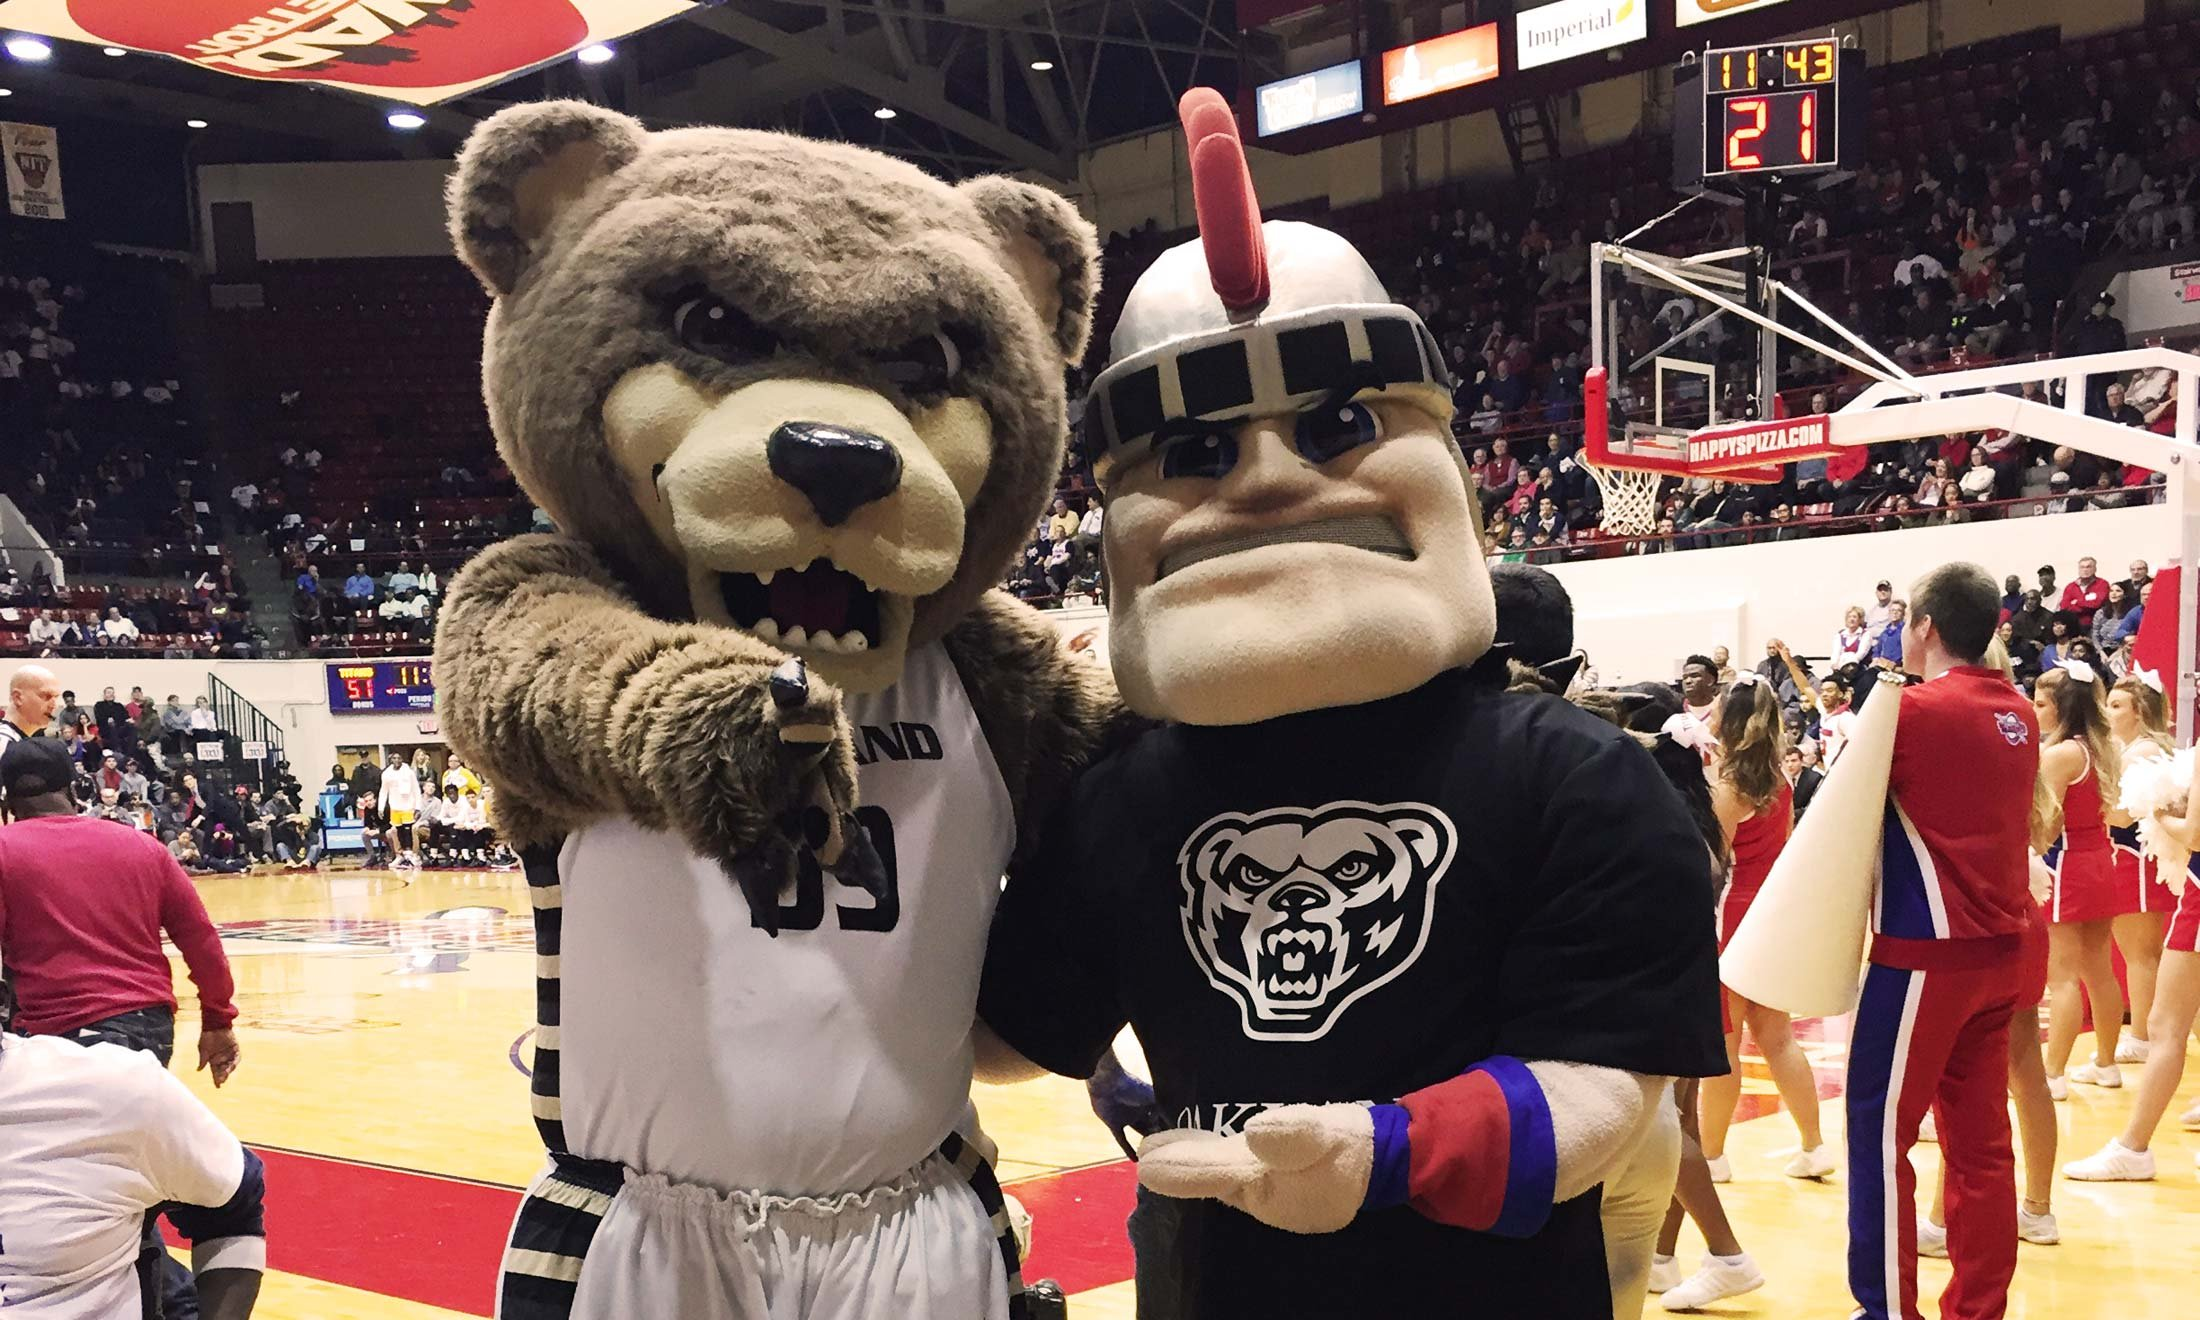 Oakland University's mascot Grizz and Detroit Mercy's mascot Tommy Titan pose together in Calihan Hall. Tommy Titan is wearing an Oakland tshirt.